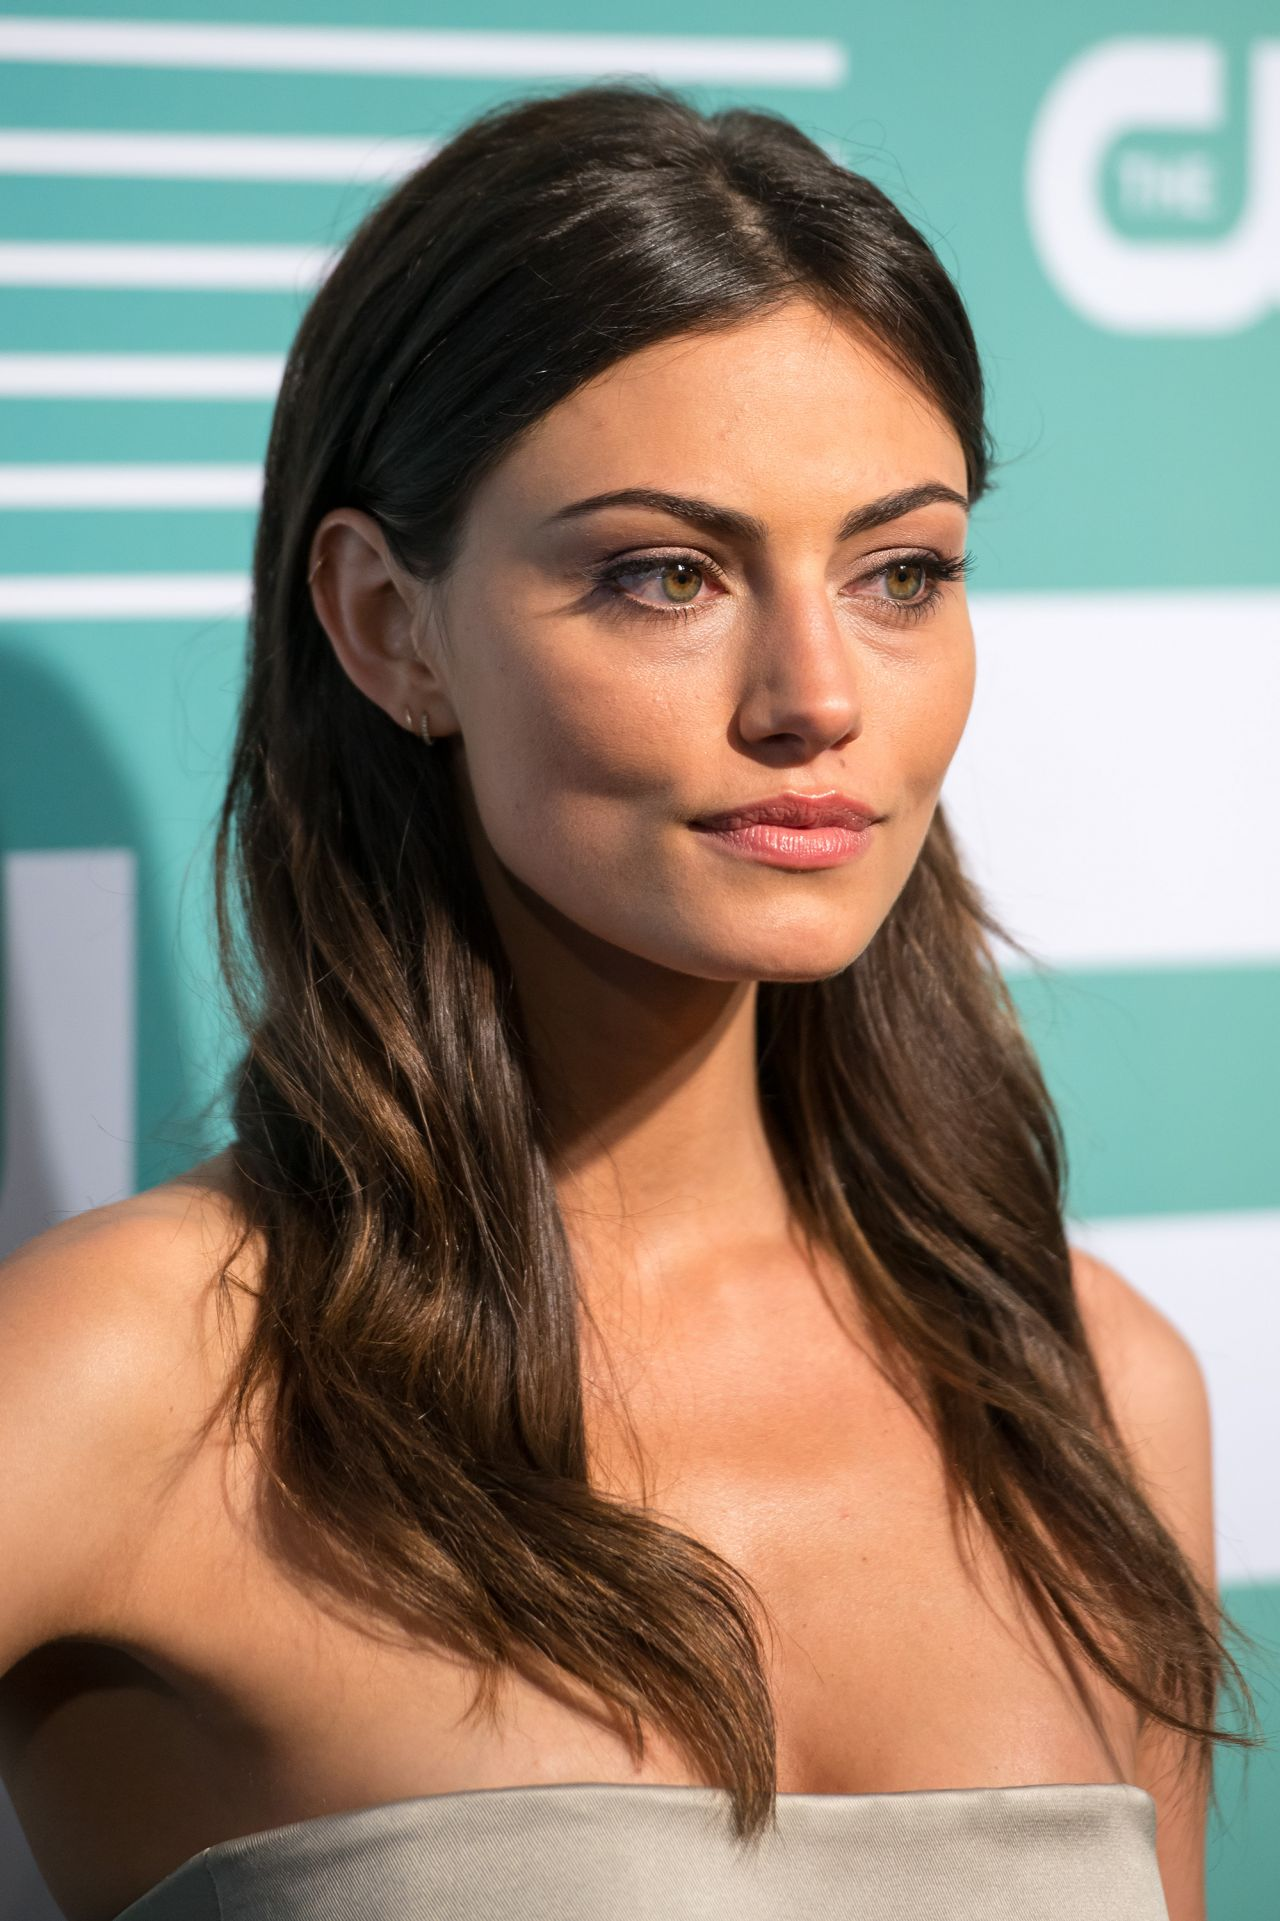 Phoebe Tonkin - The CW Networks 2015 Upfront in New York